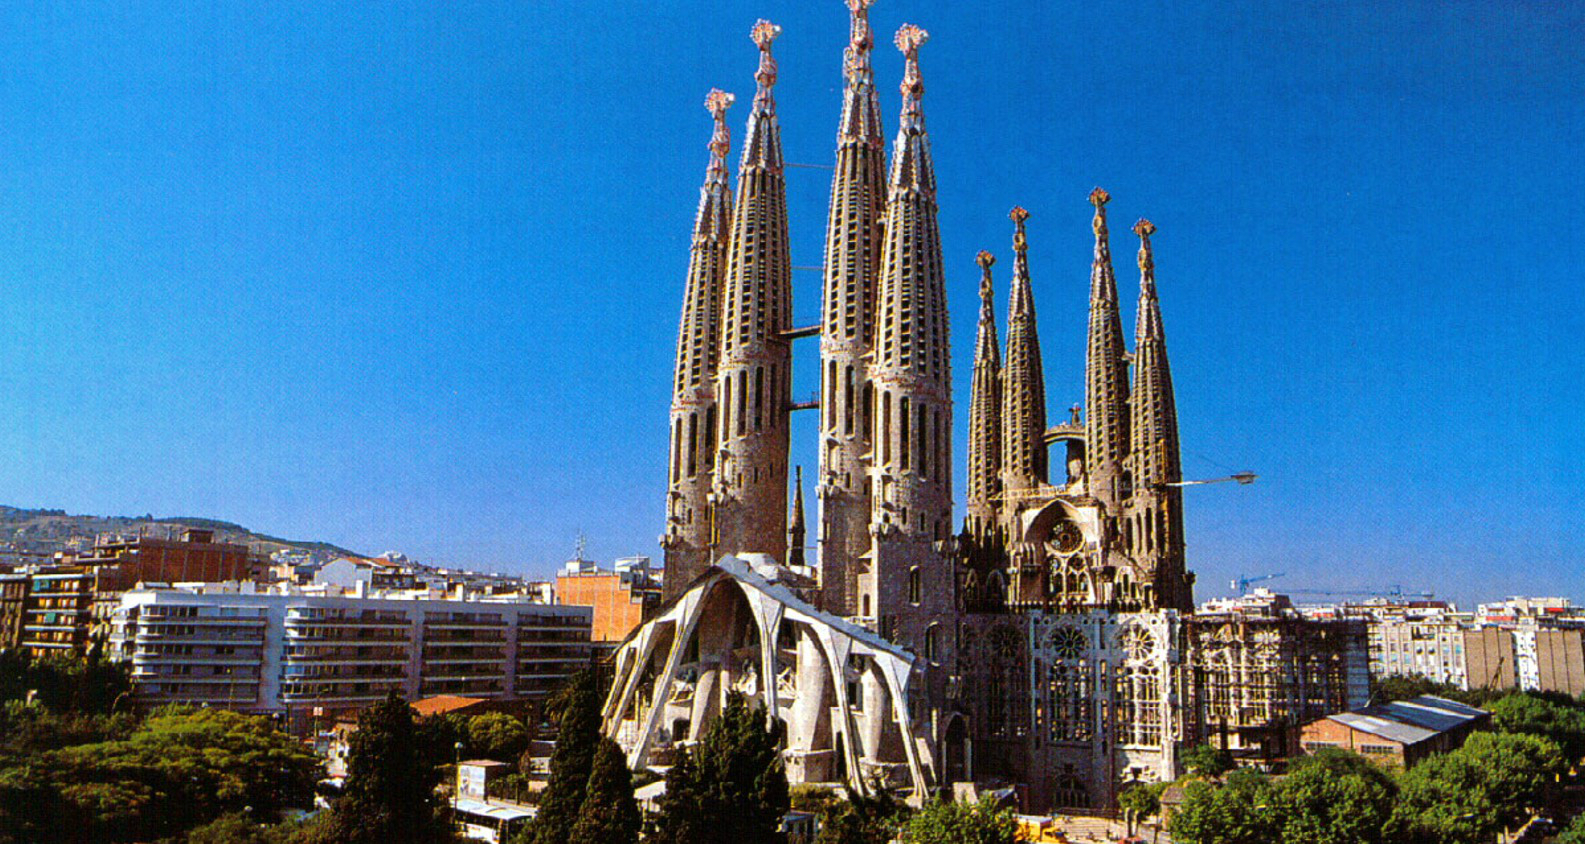 La Sagrada Familia. Source: Barcelona Home